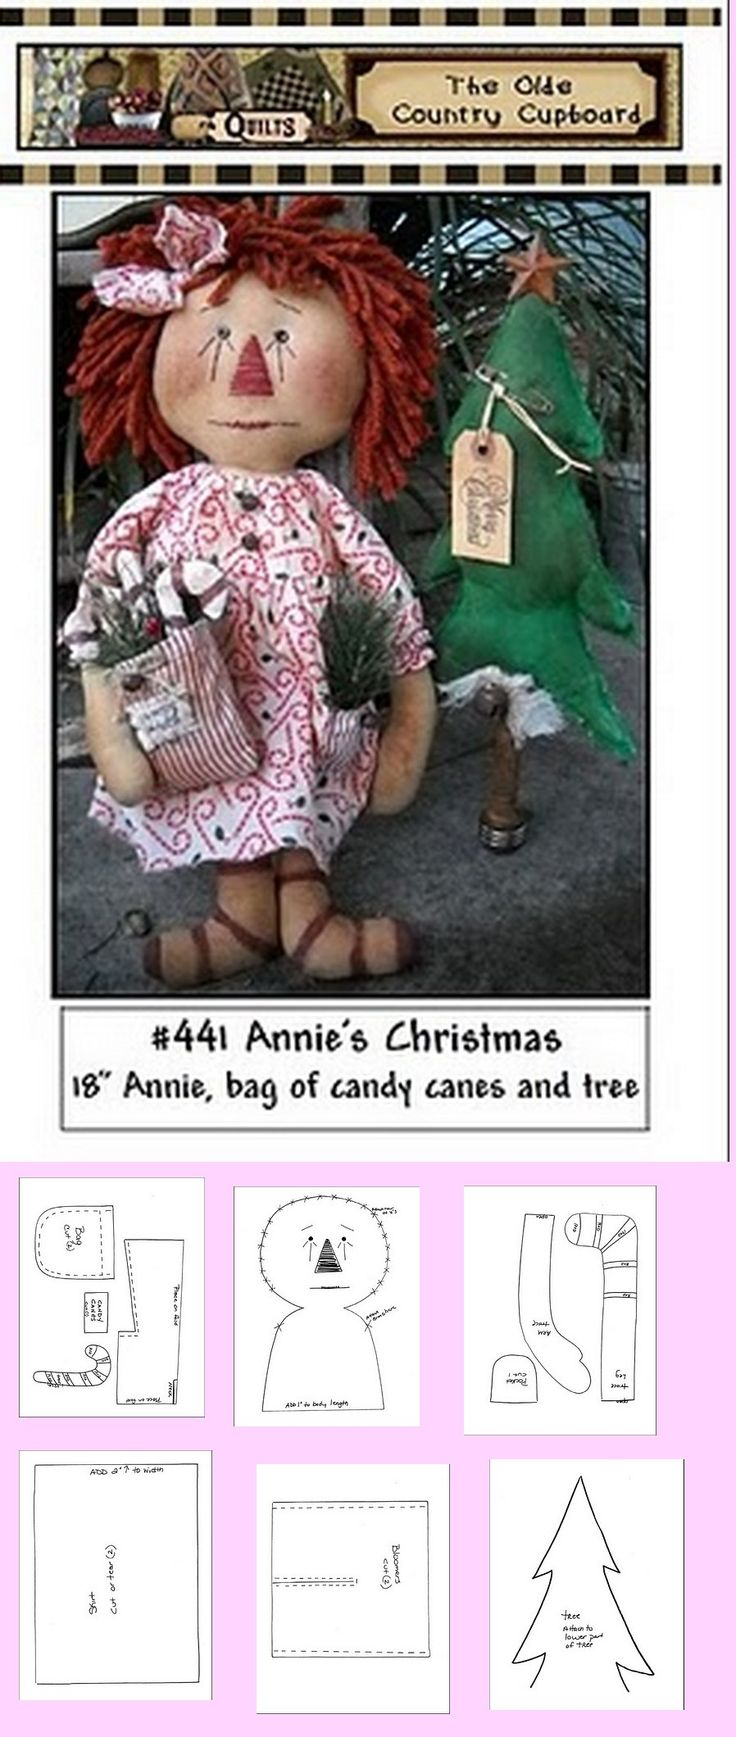 Raggedy Anne with bag of candy canes